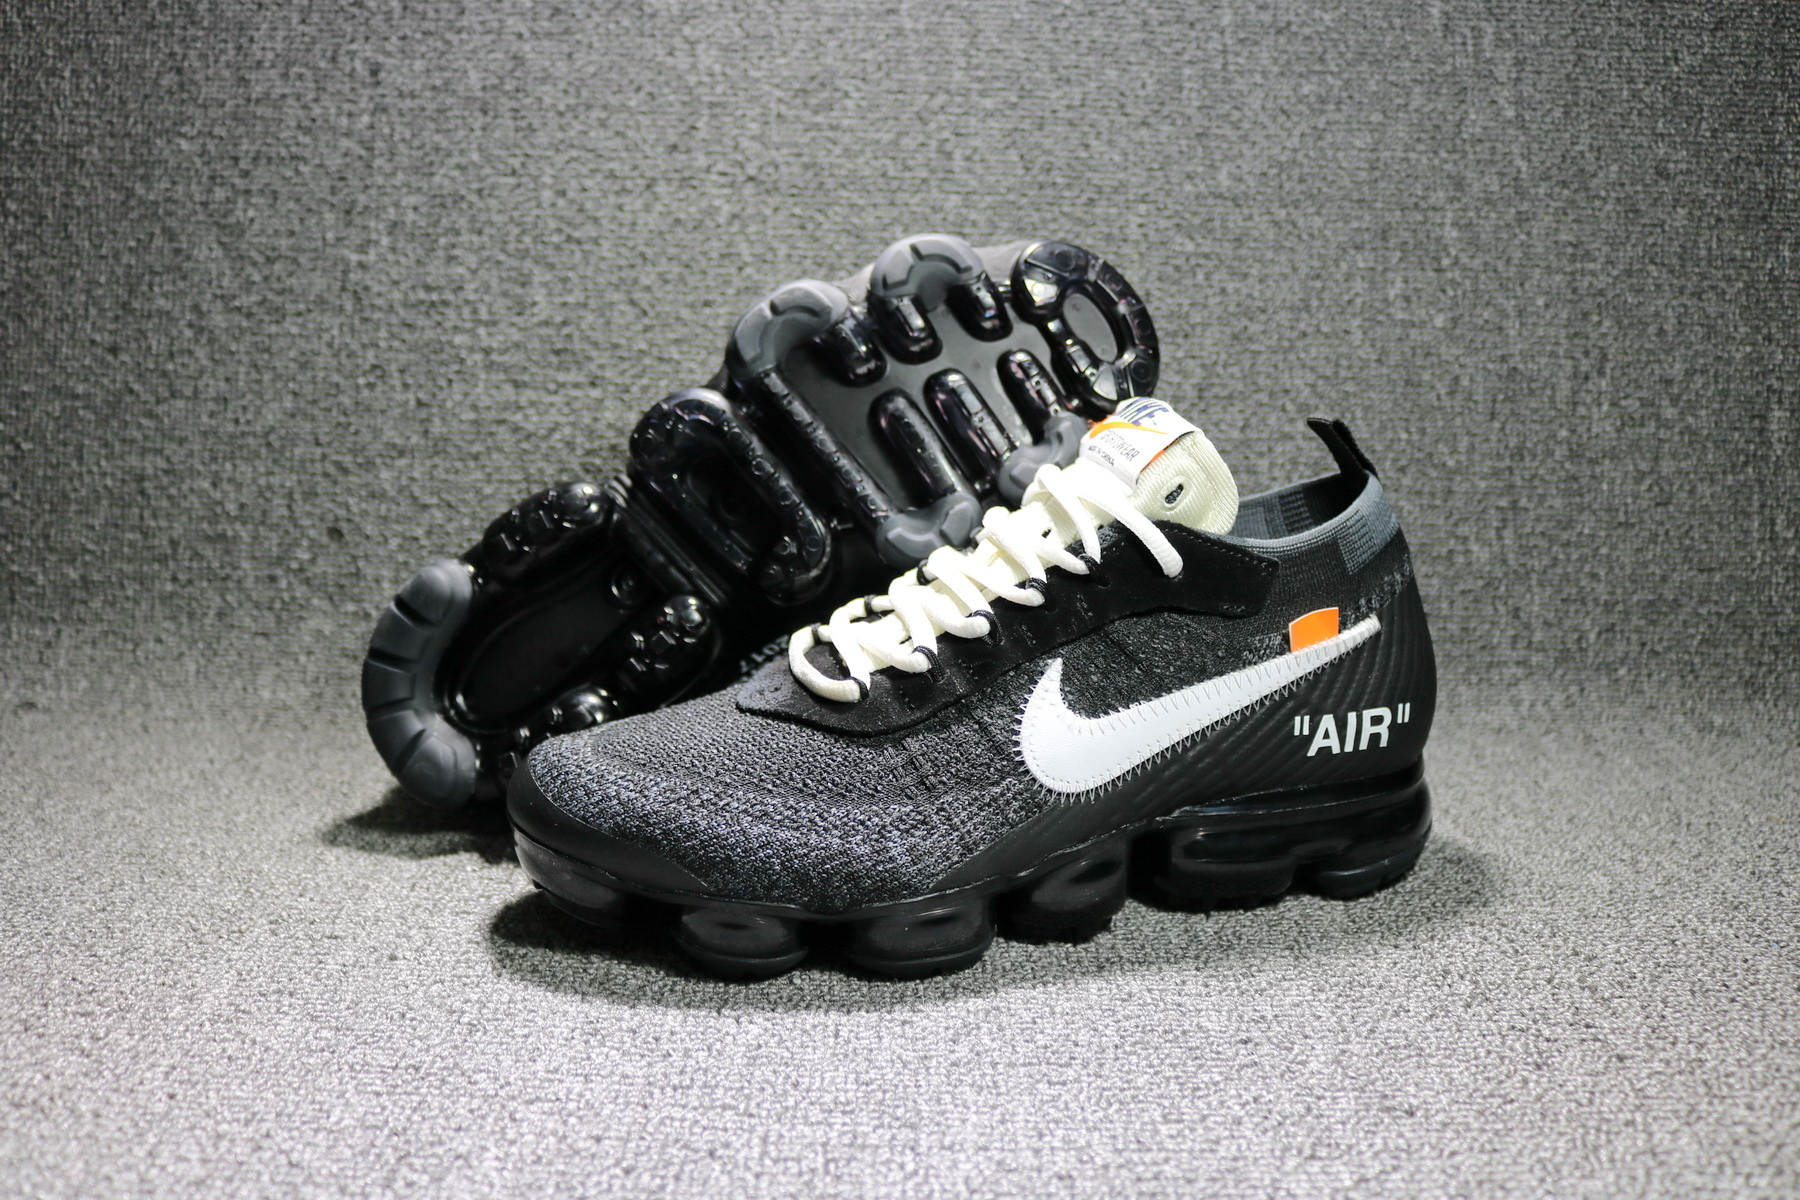 New 2018 Nike Air VaporMax Black White